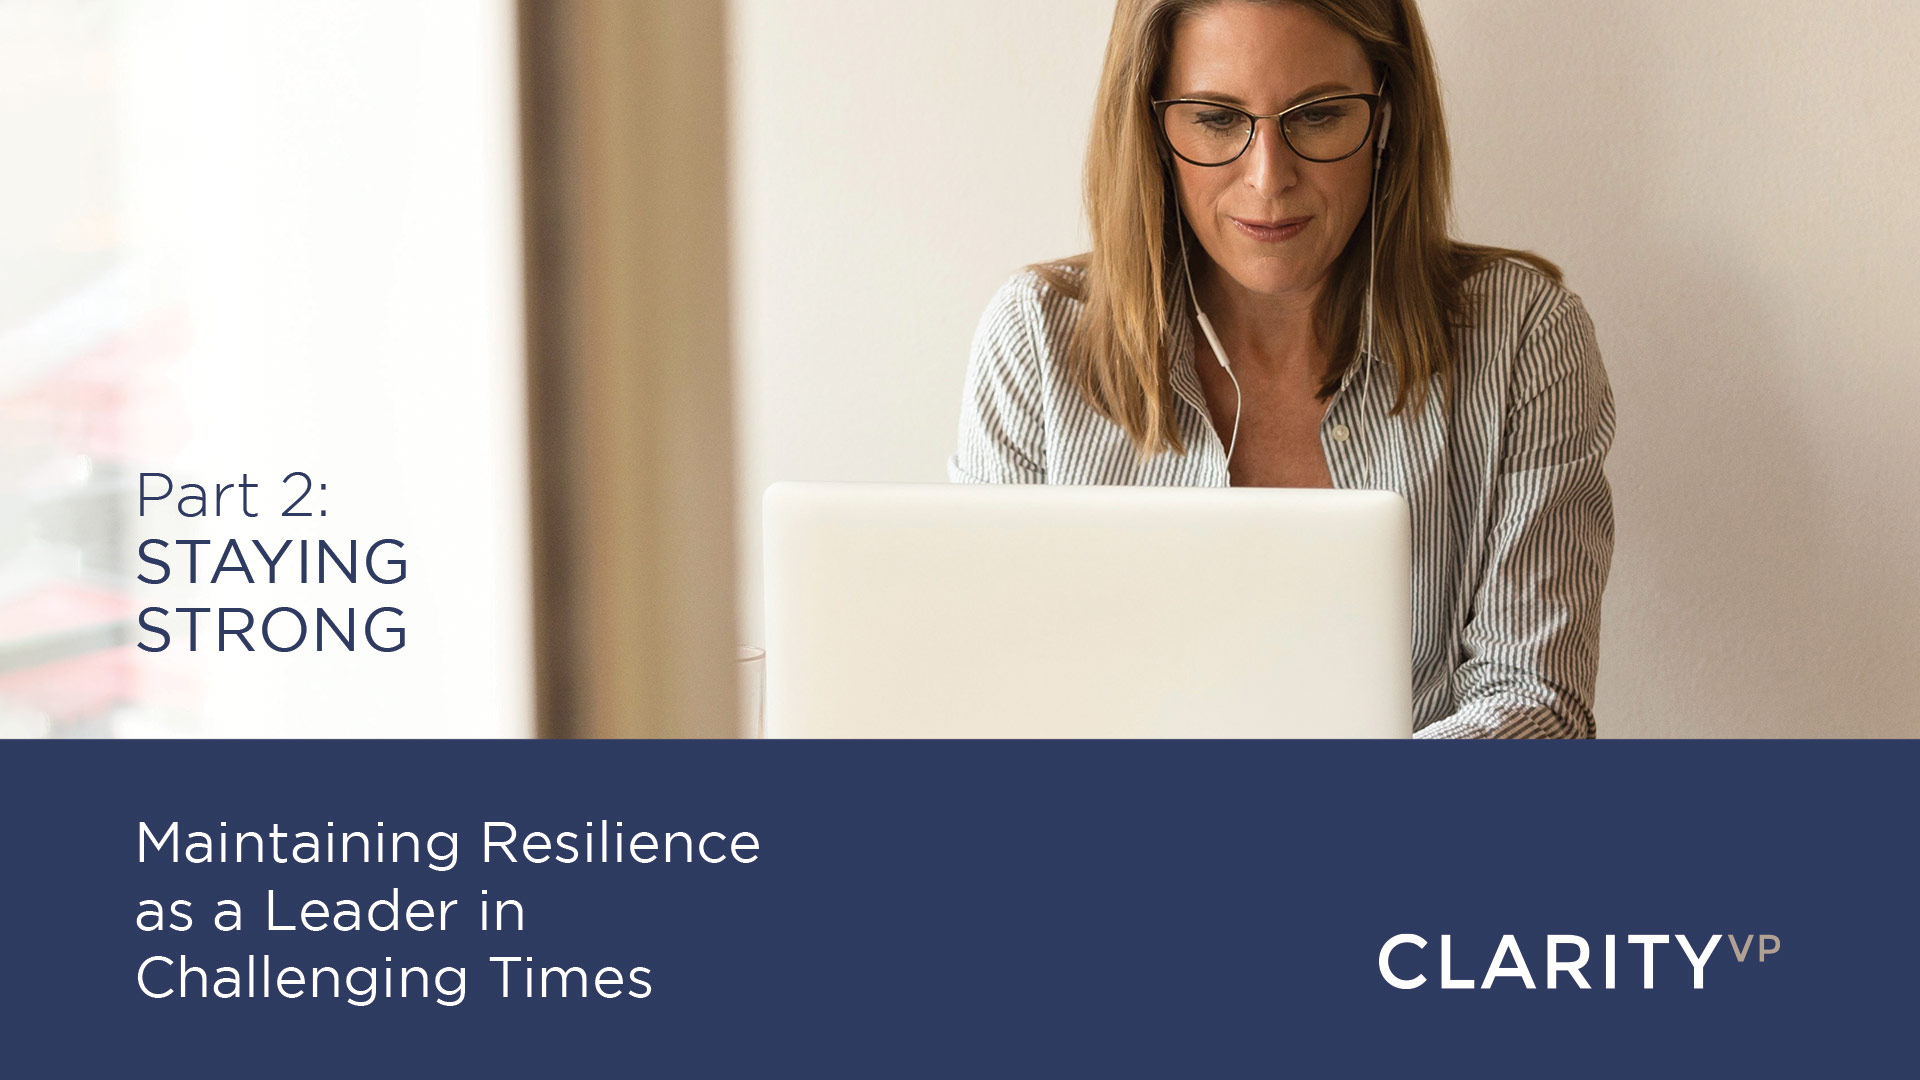 Part 2: Staying Strong – Maintaining Resilience as a Leader During Challenging Times